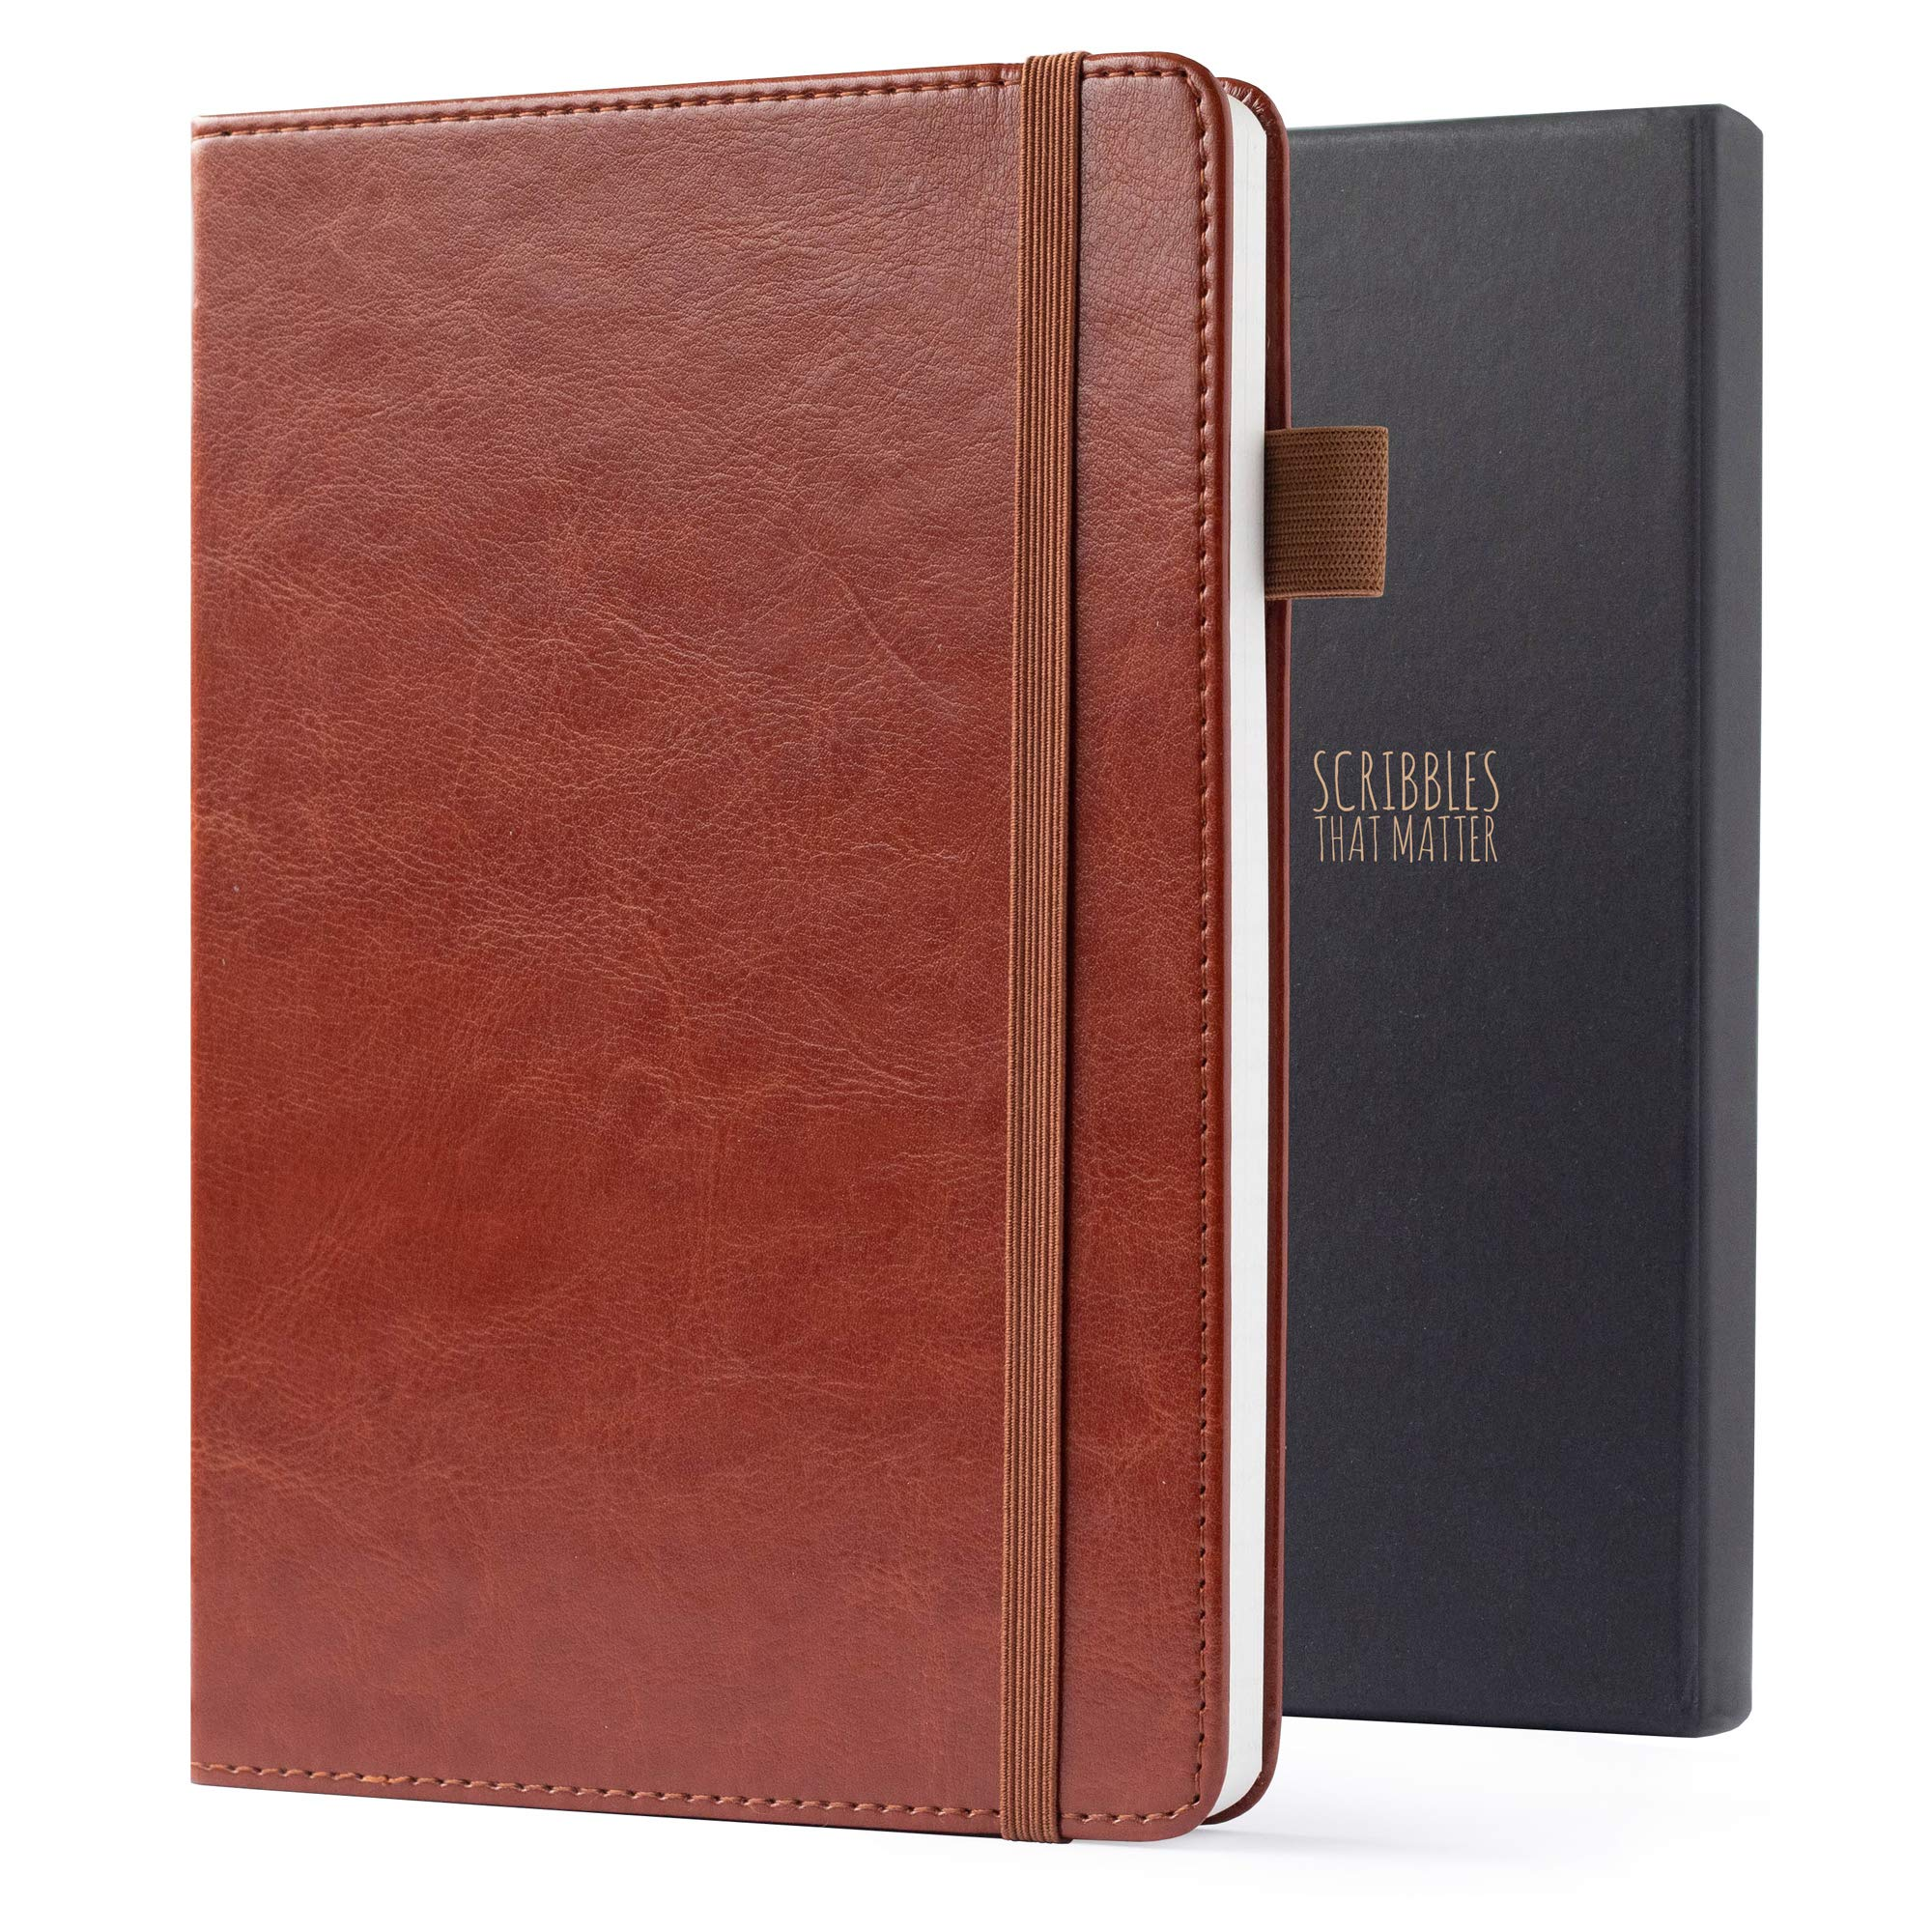 Thick Premium Paper Ruled Notebook Premium A5 Journal Hardcover Classic Vegan Leather Notebook